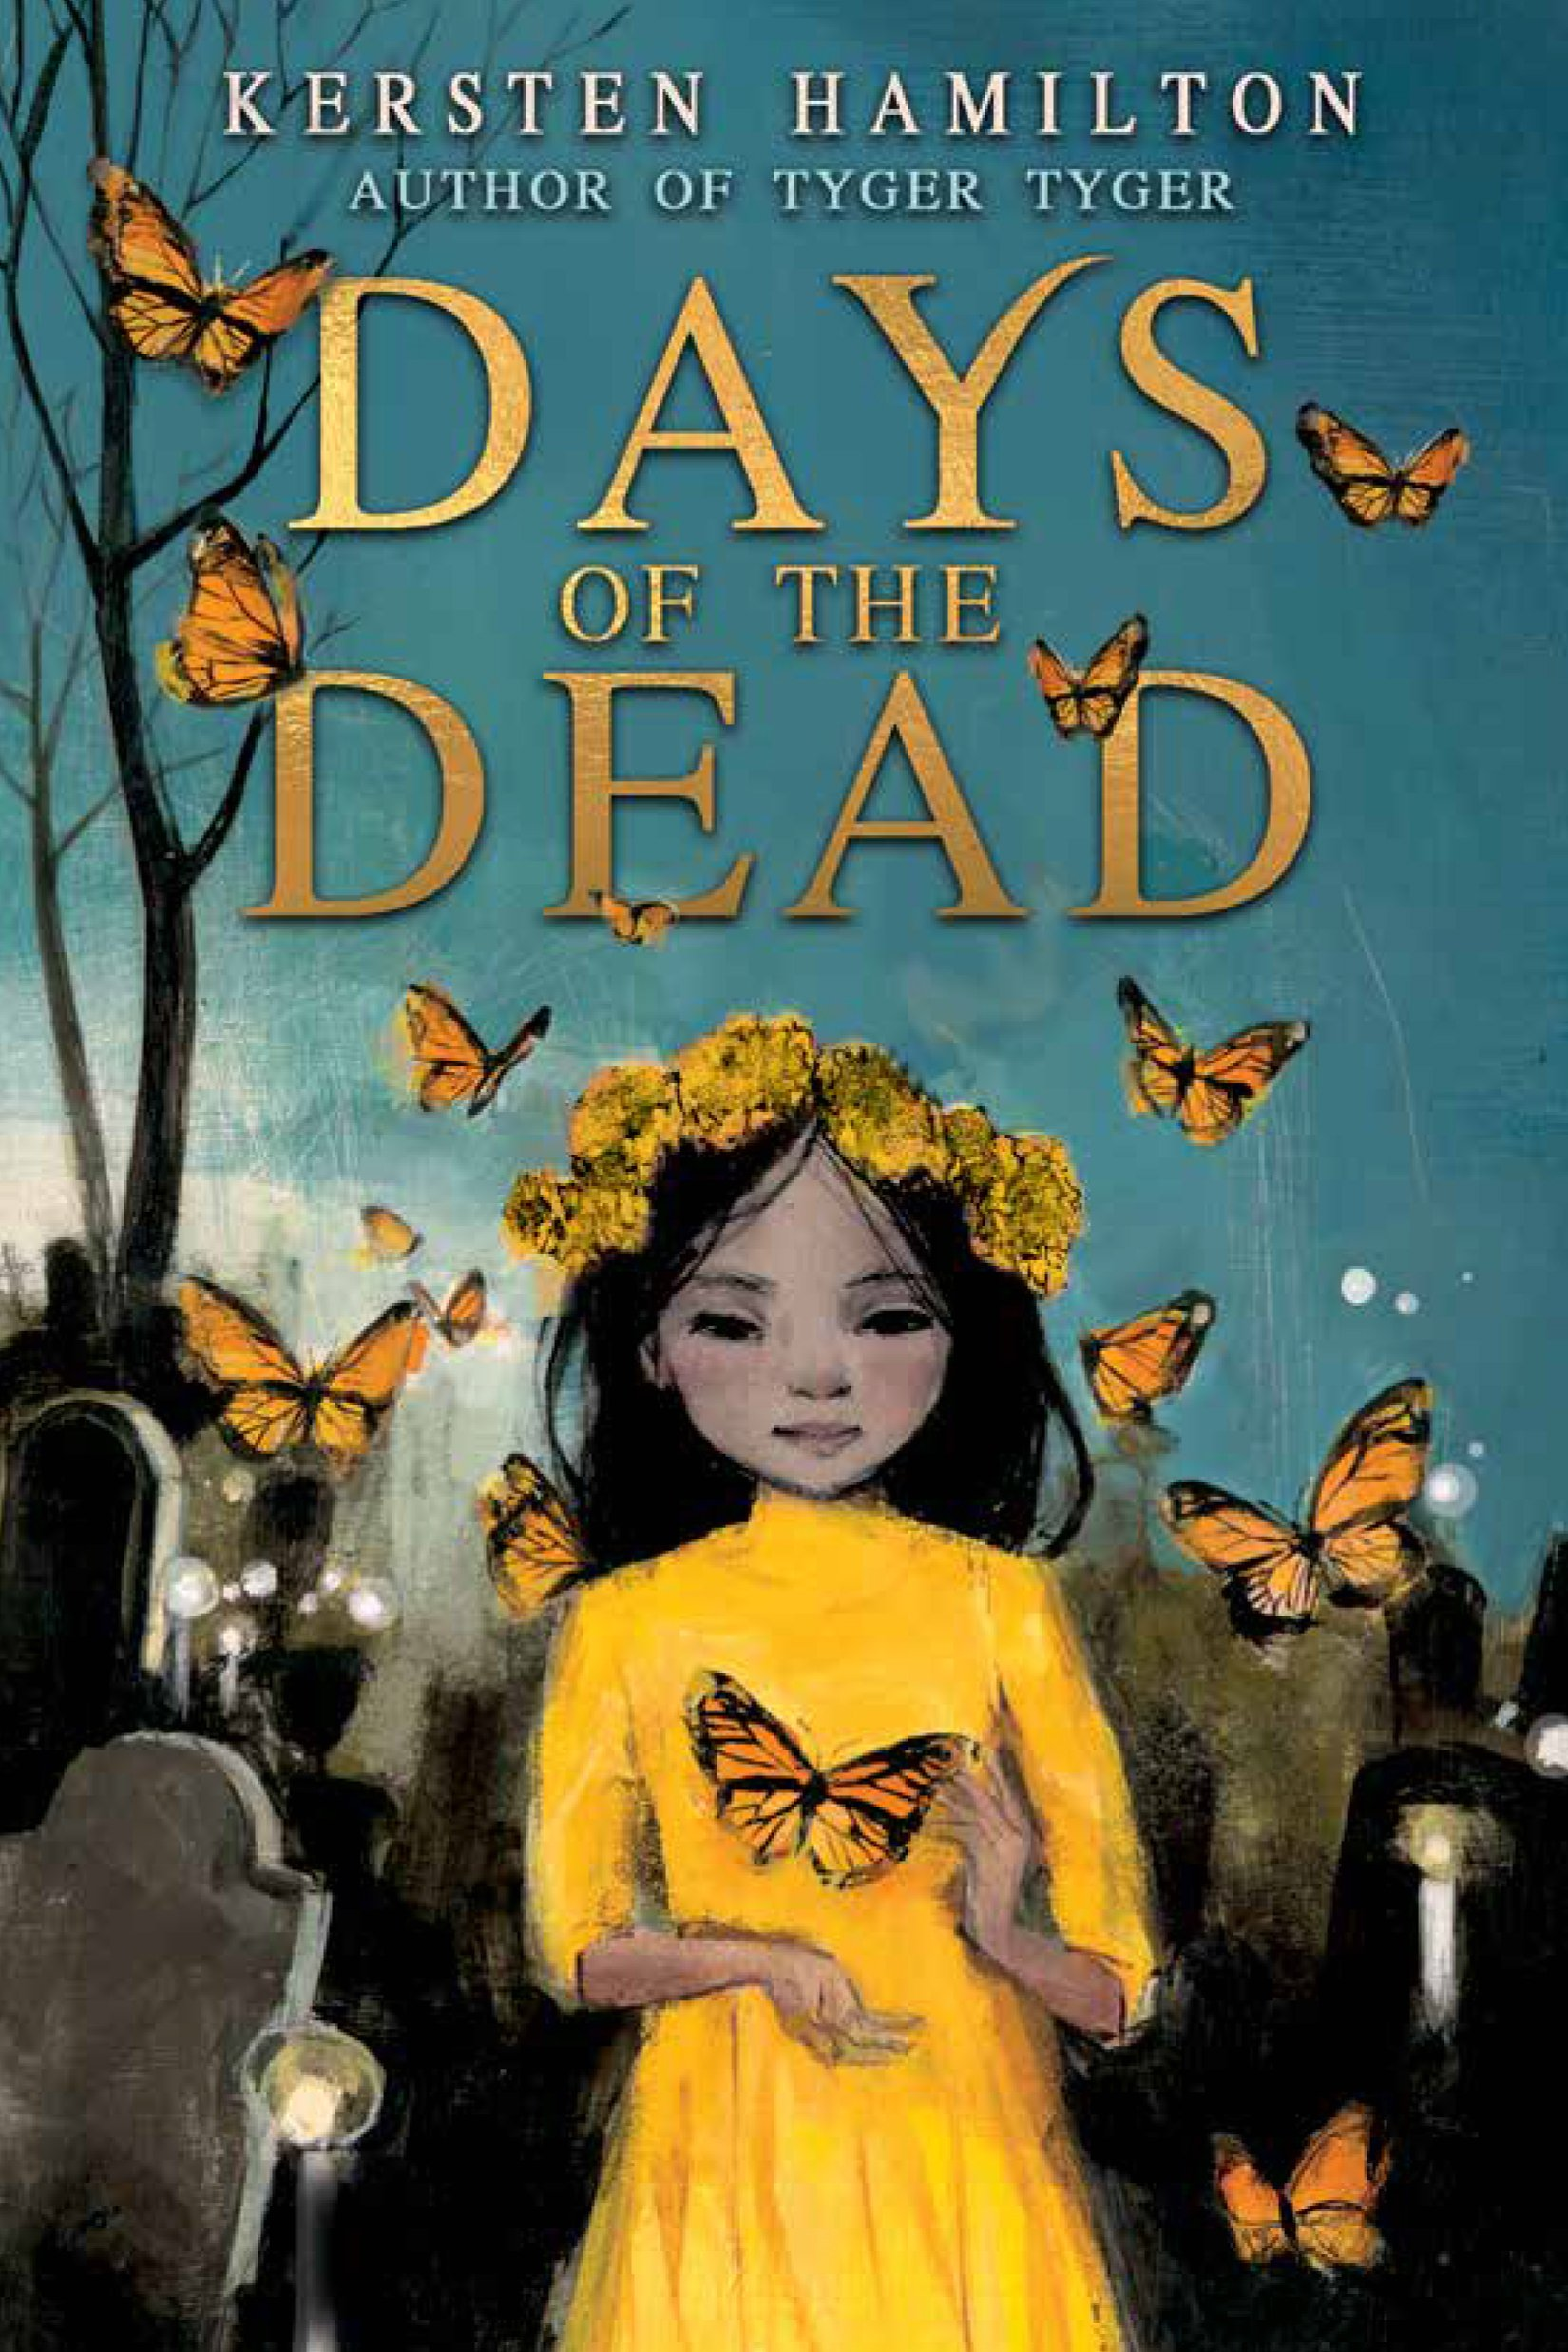 Image result for days of the dead kersten hamilton